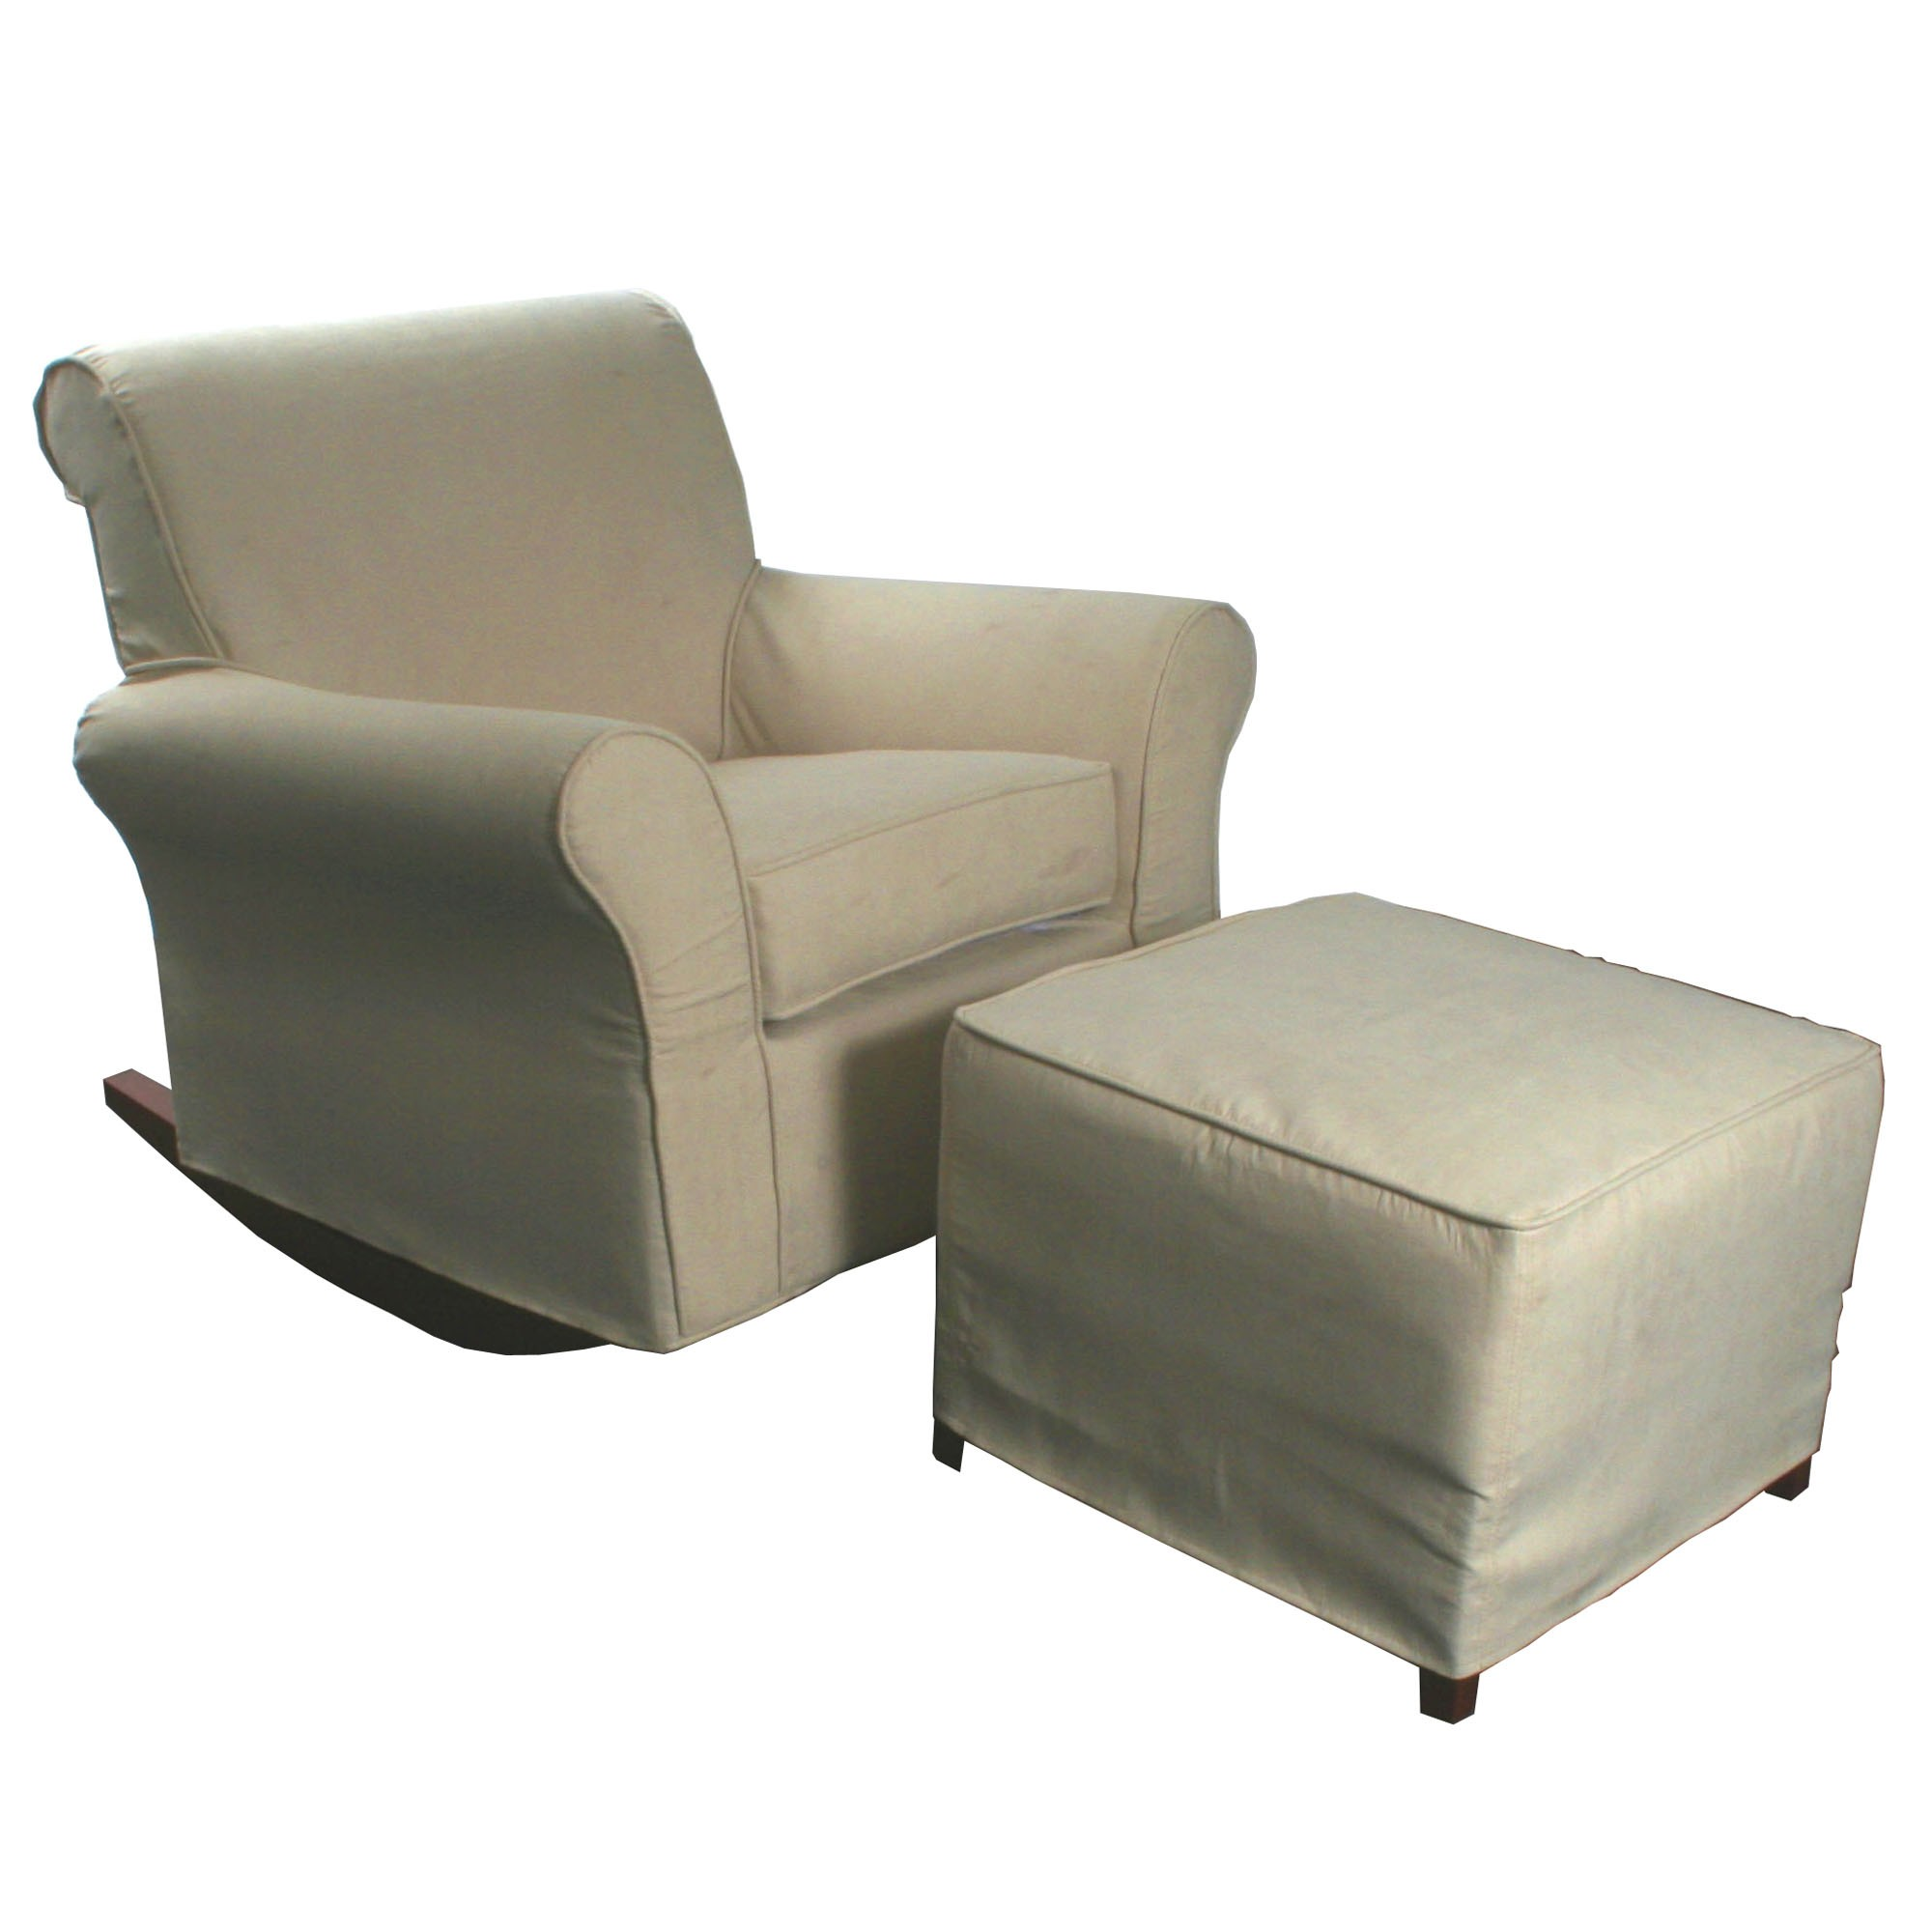 Picture of: Courtney glider chair ideas